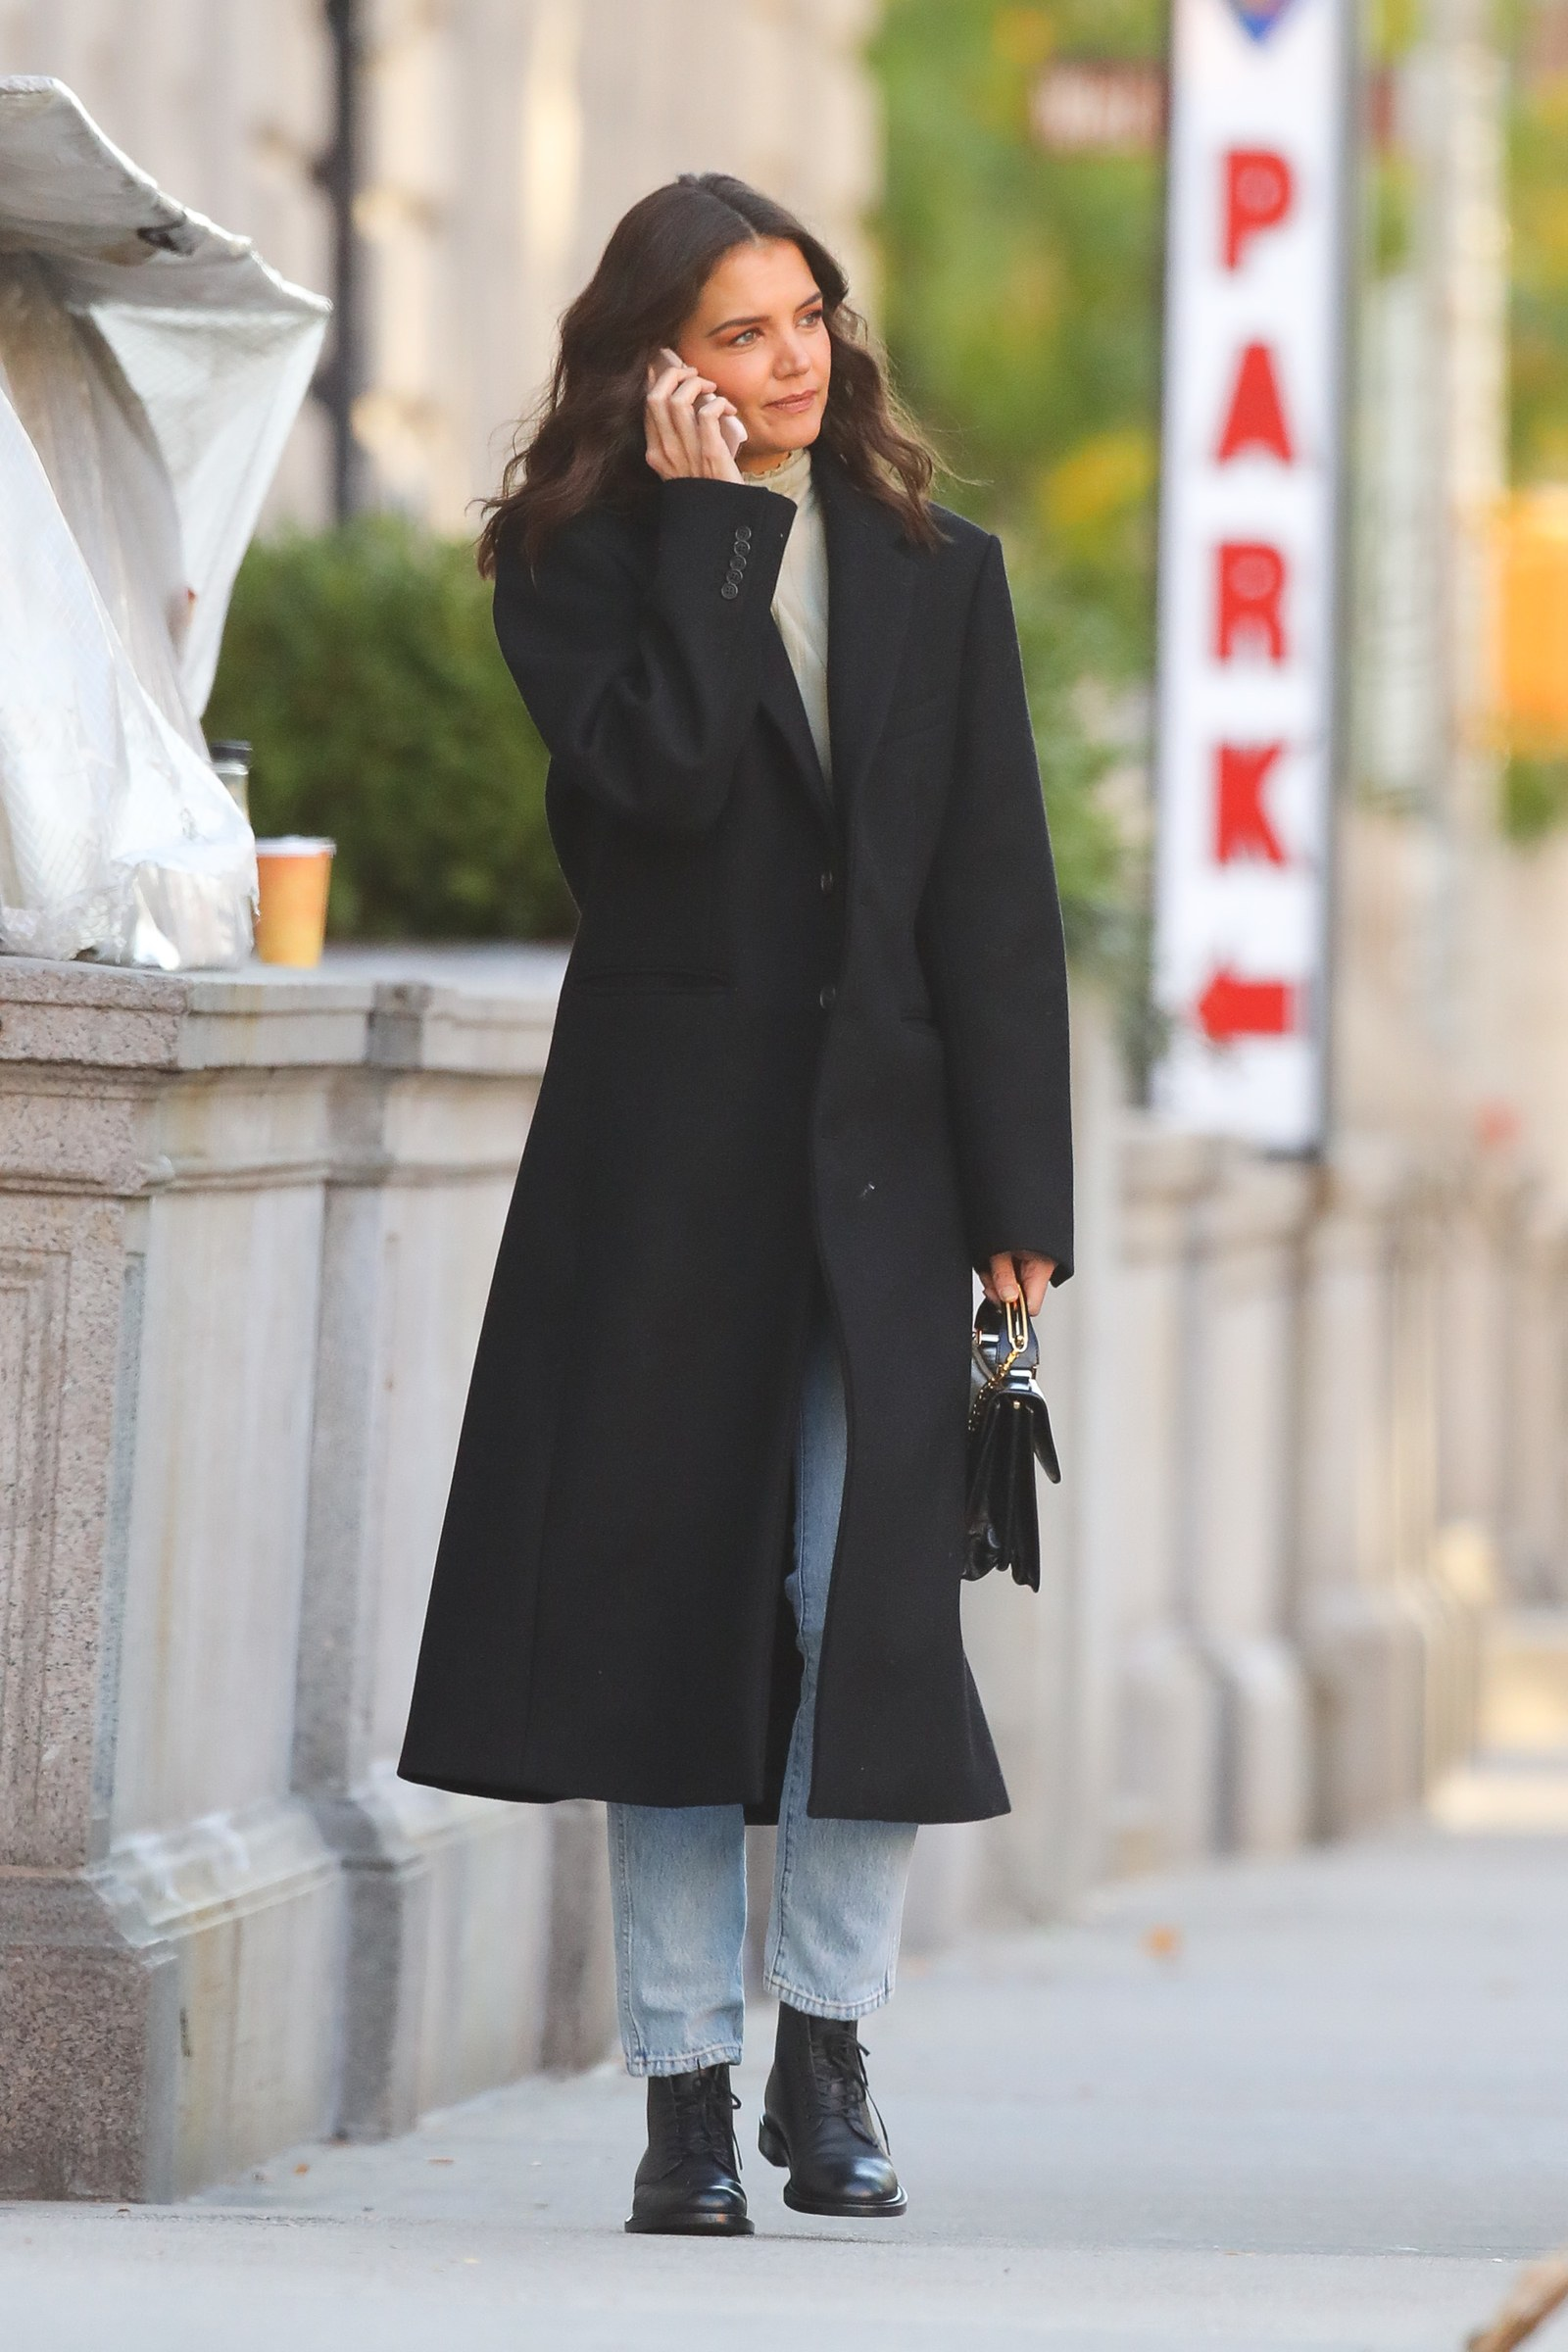 Katie Holmes talking on phone and wearing a peacoat and jeans